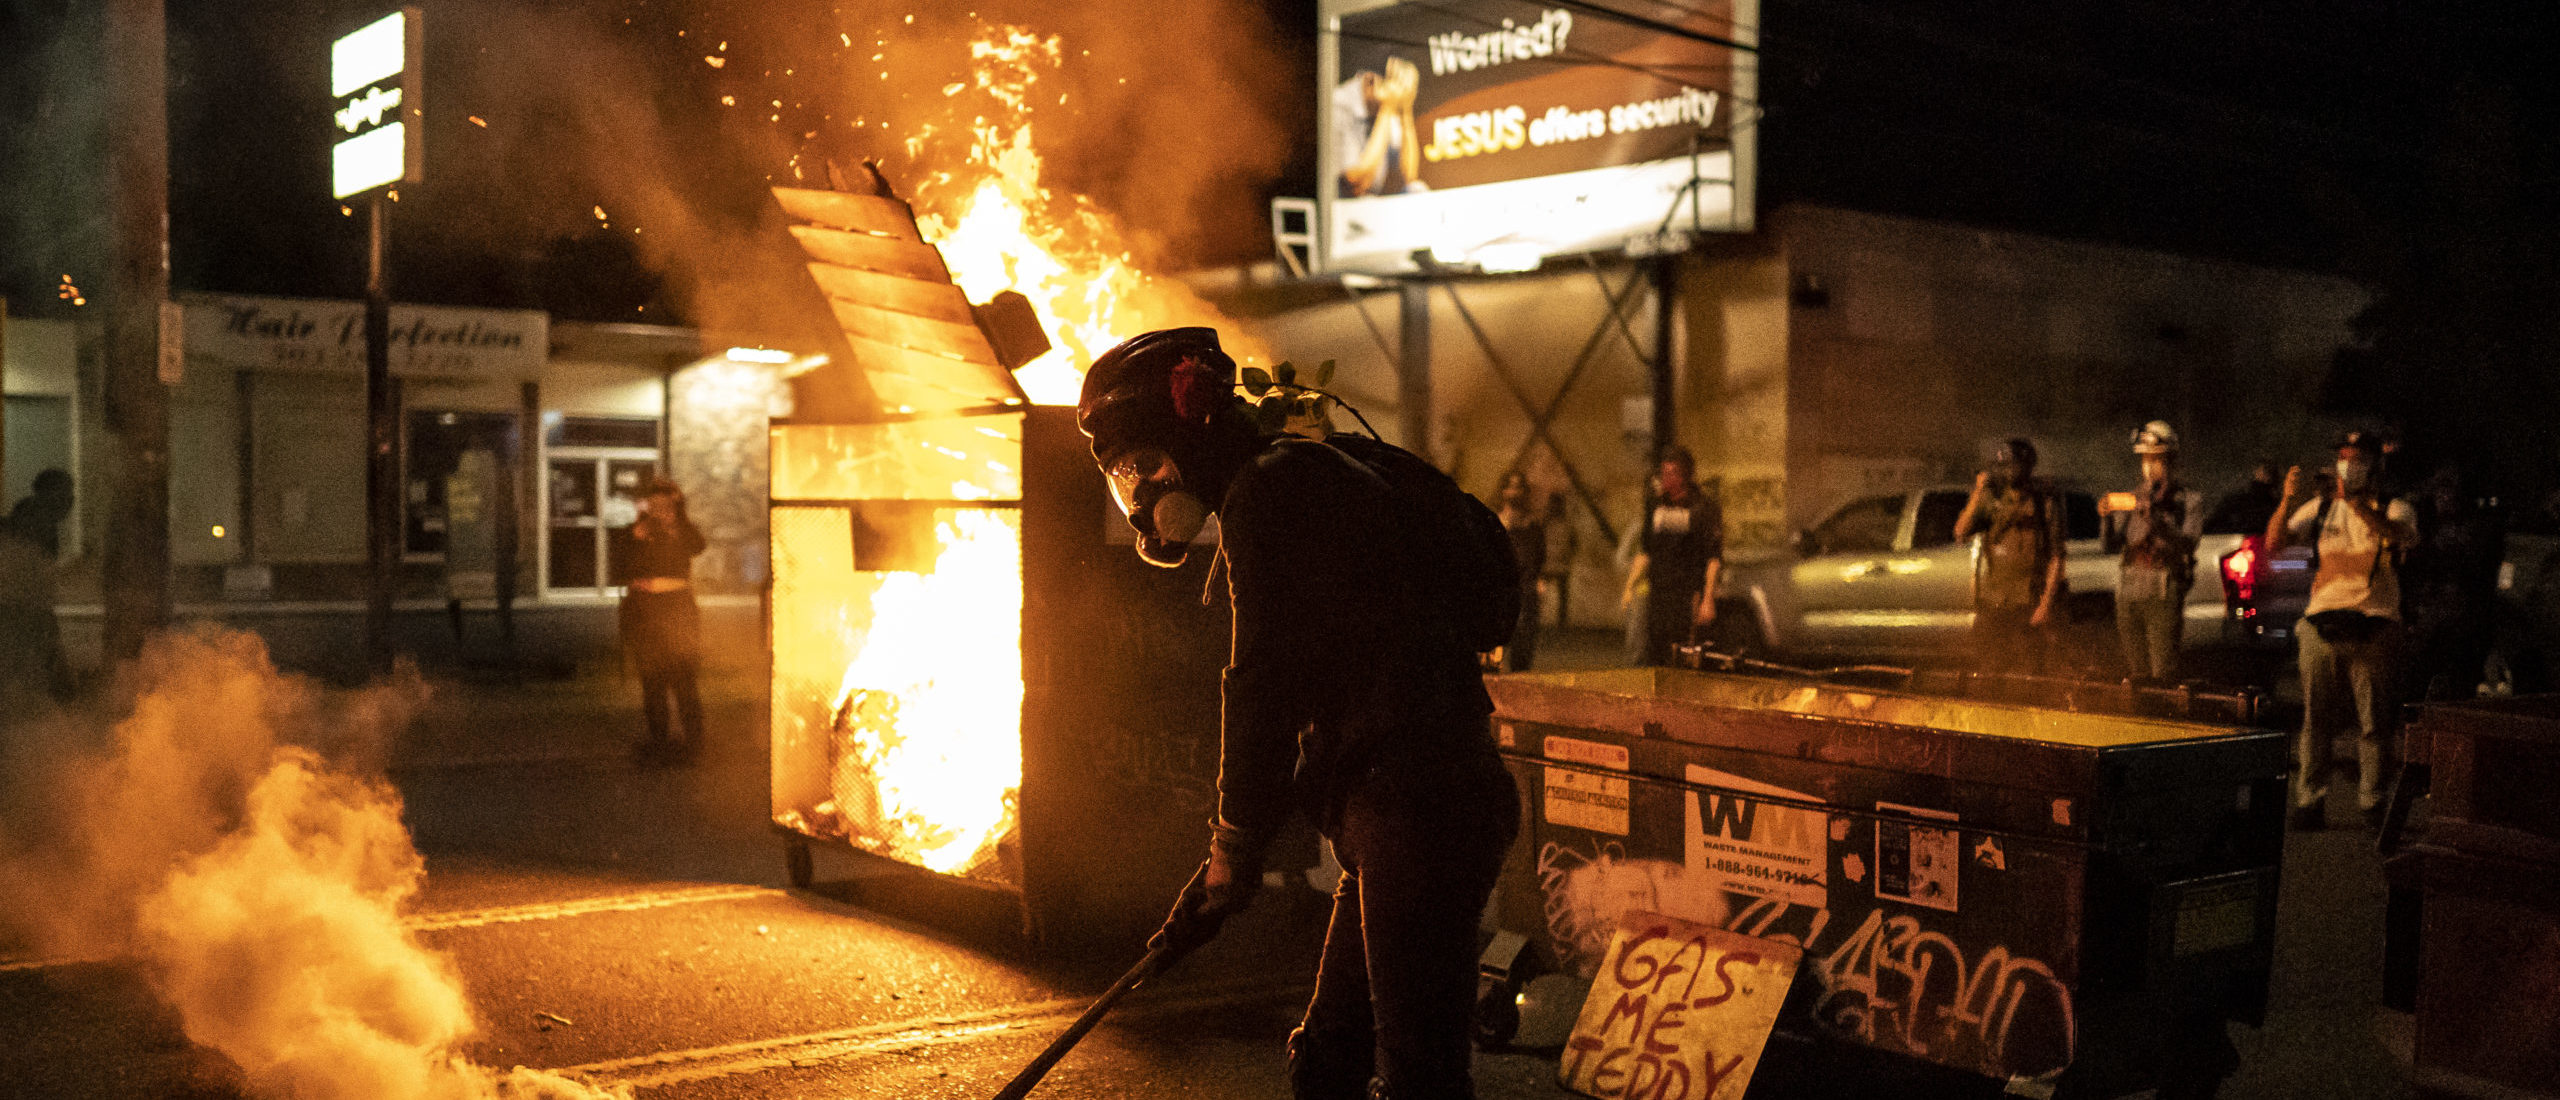 Portland Man Charged With Arson For Lighting Dumpster On Fire During Riot   The Daily Caller